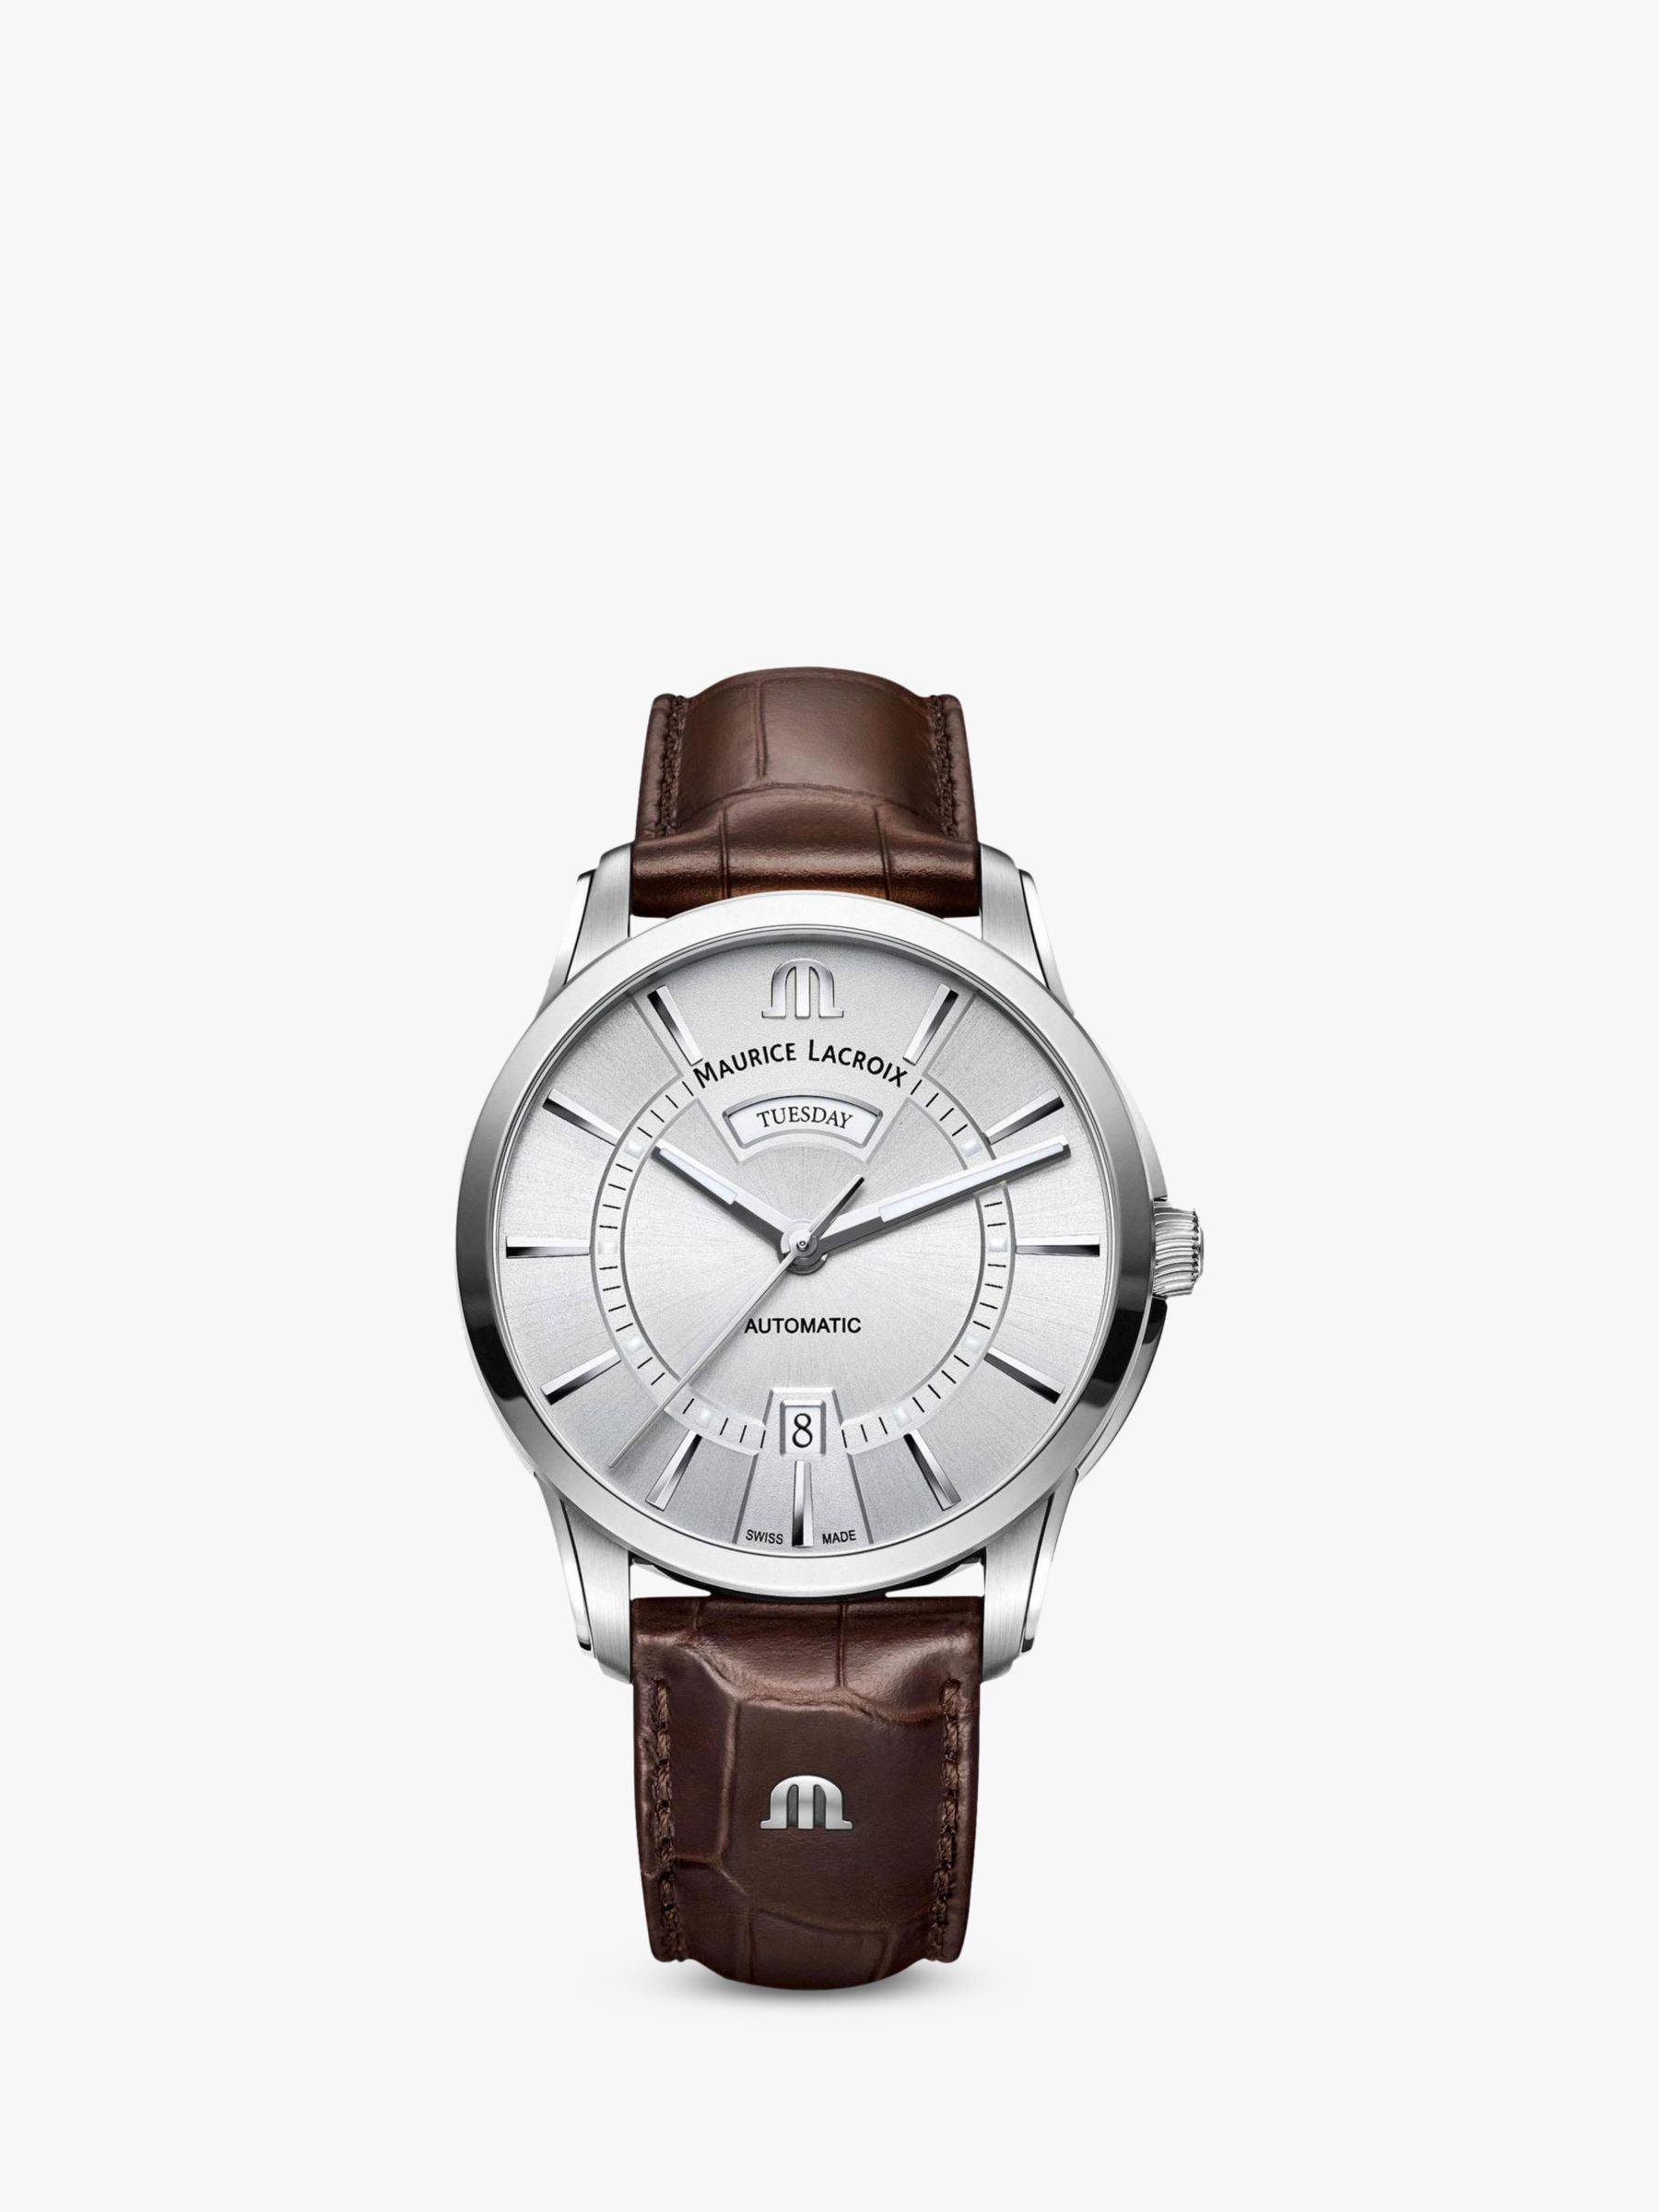 Maurice Lacroix Maurice Lacroix PT6358-SS001-130-1 Men's Pontos Automatic Day Date Leather Strap Watch, Brown/Silver